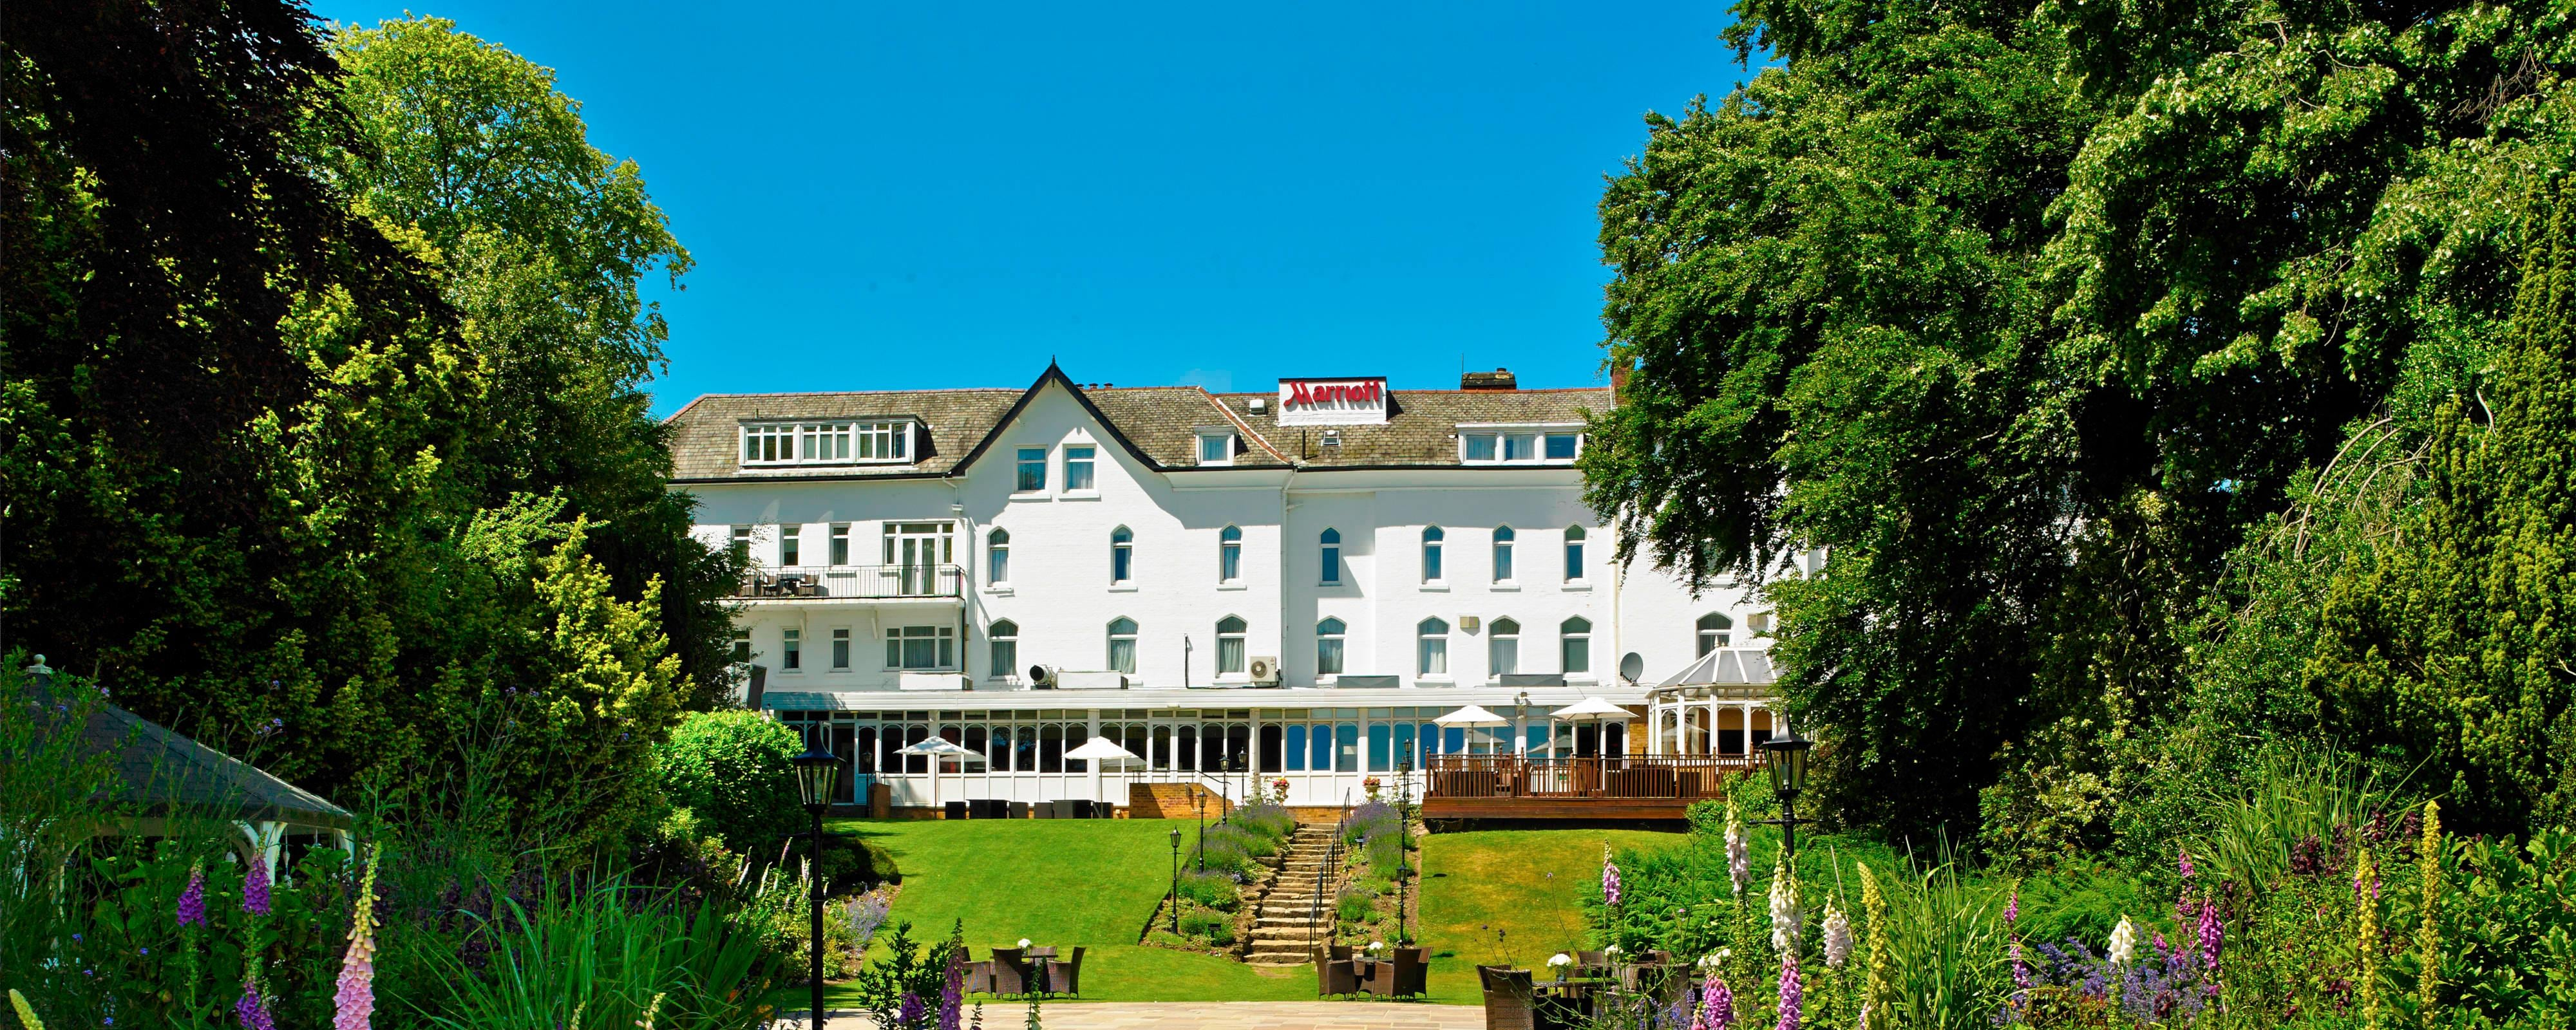 York Marriott near York Racecourse